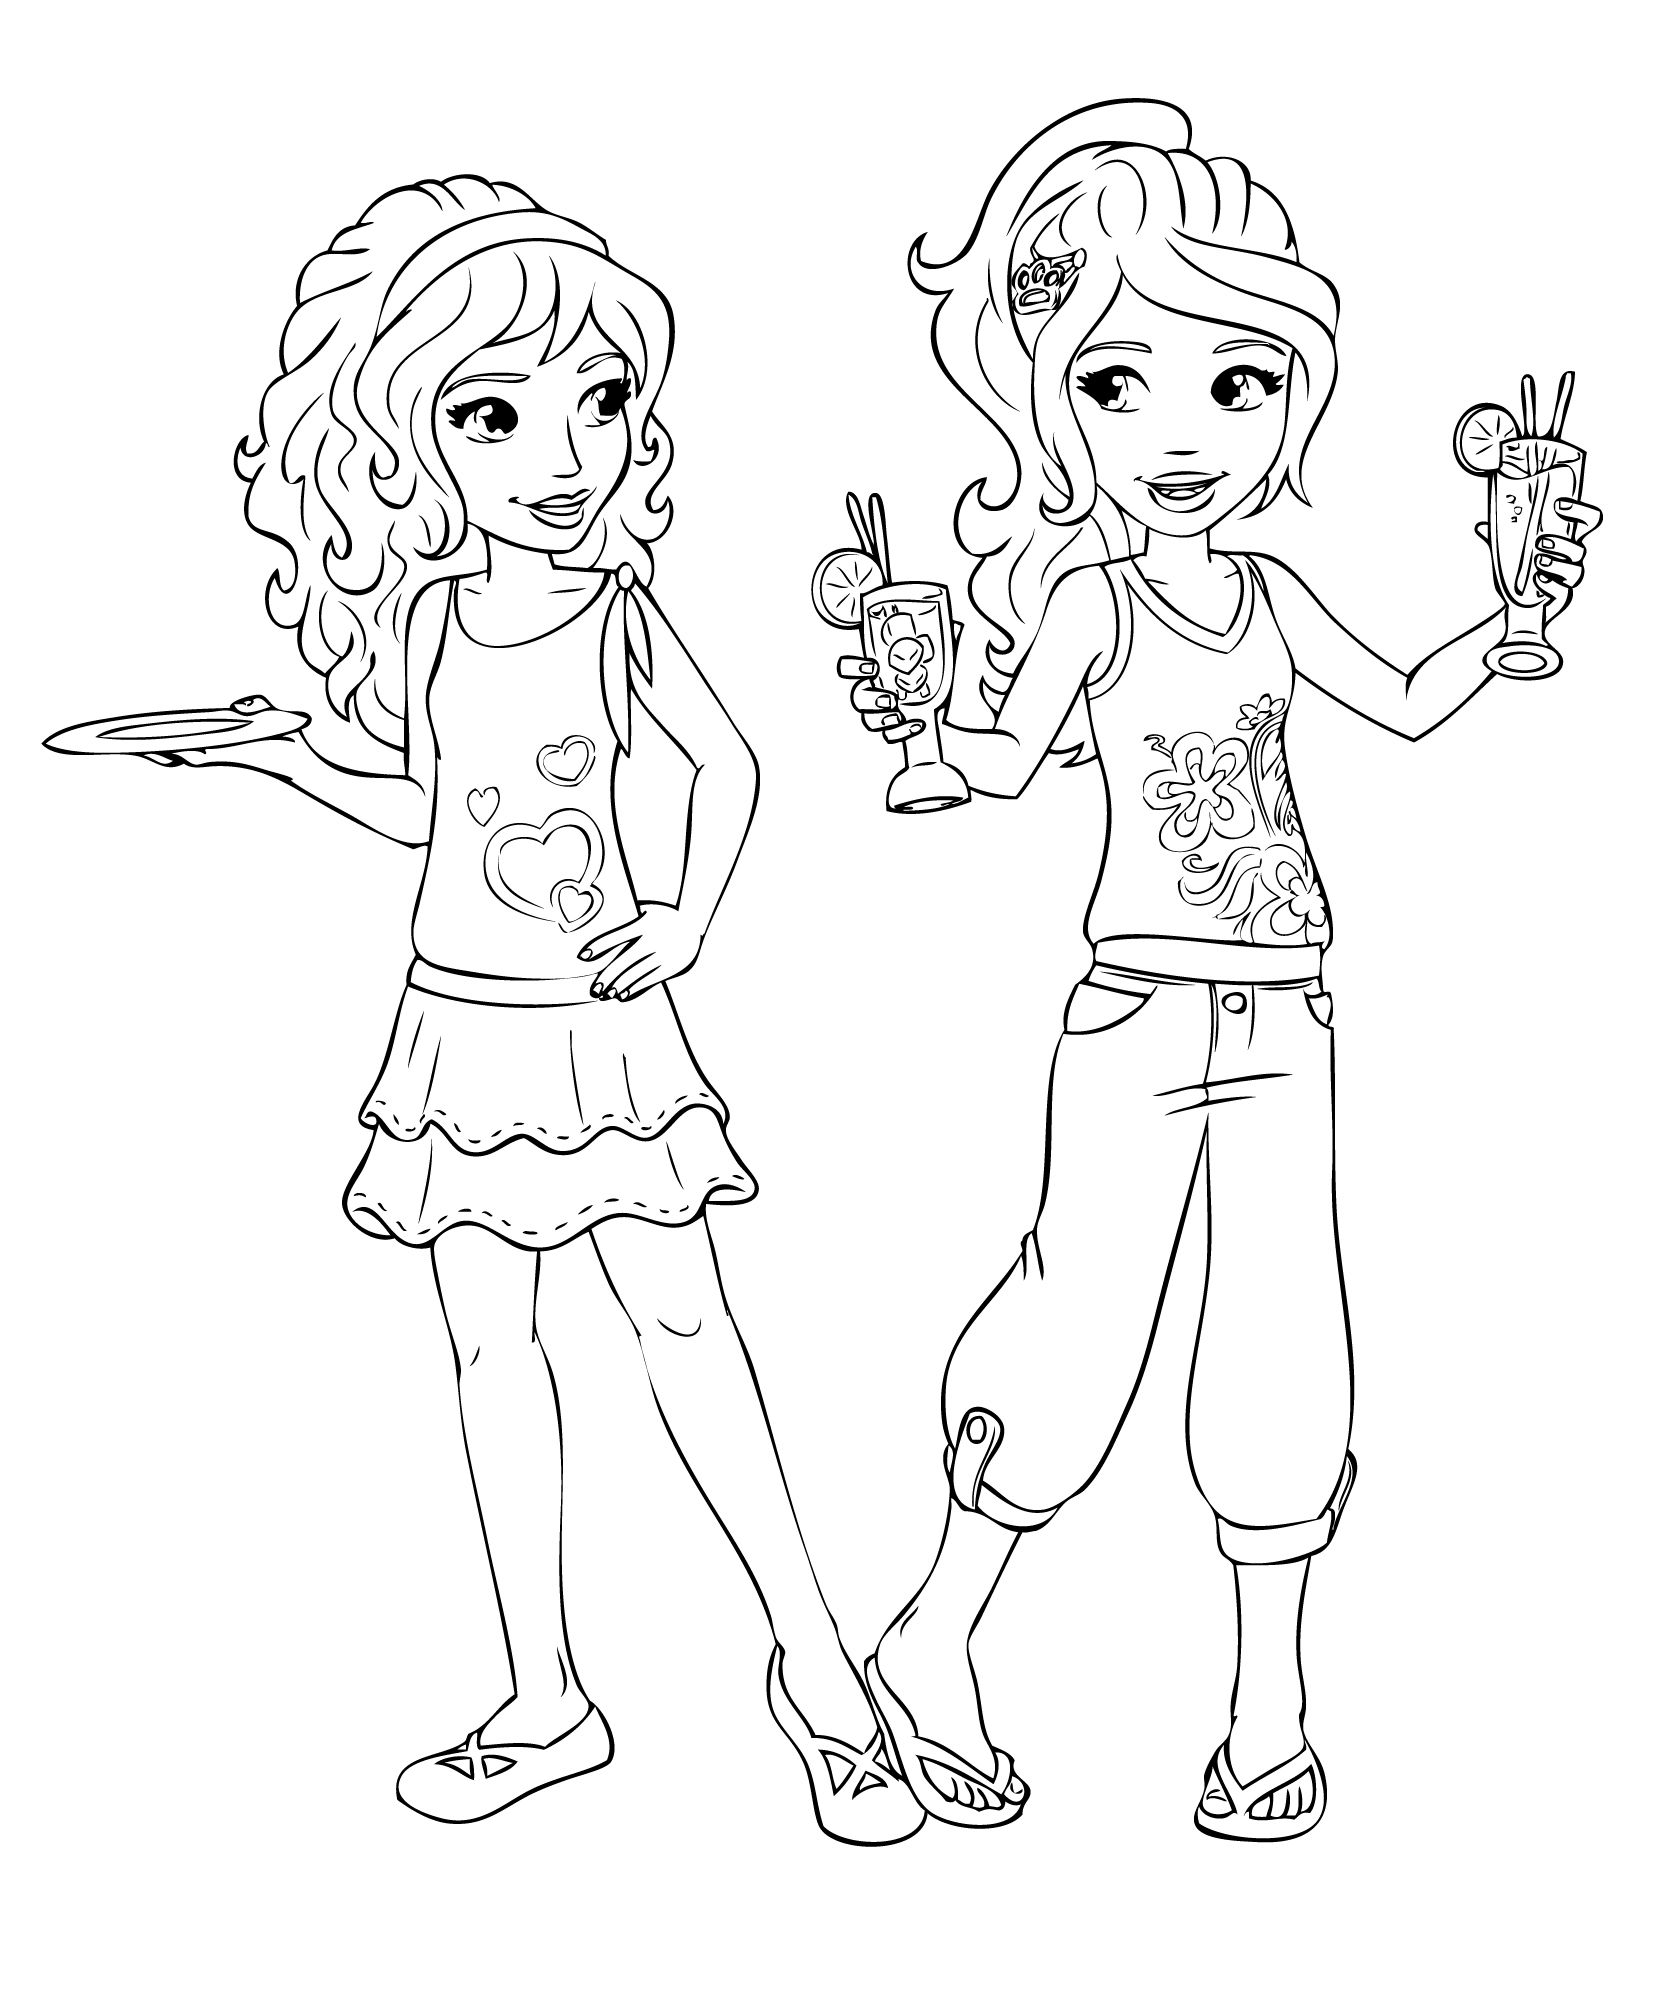 Lego Friends Coloring Pages Tagged With Best Friends Coloring